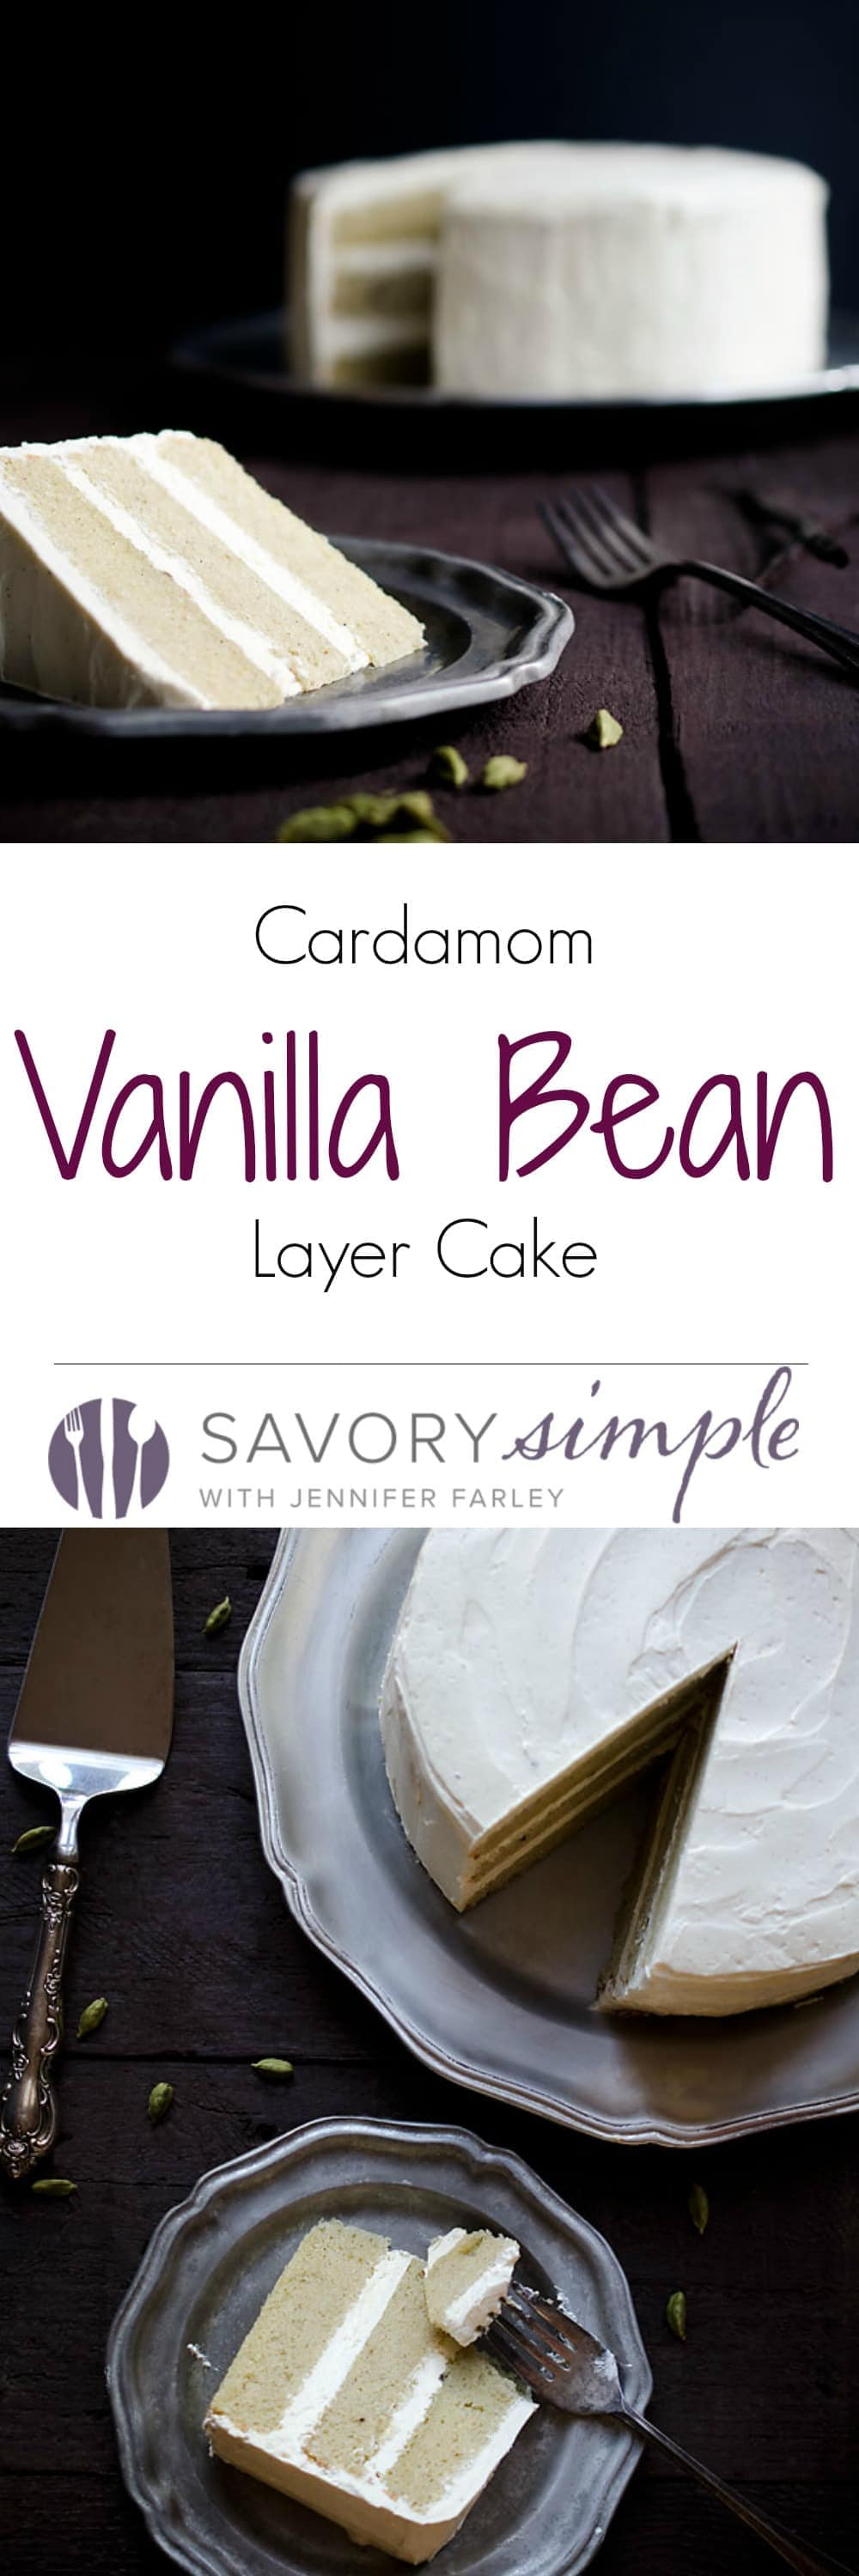 Cardamom Vanilla Bean Layer Cake - Savory Simple